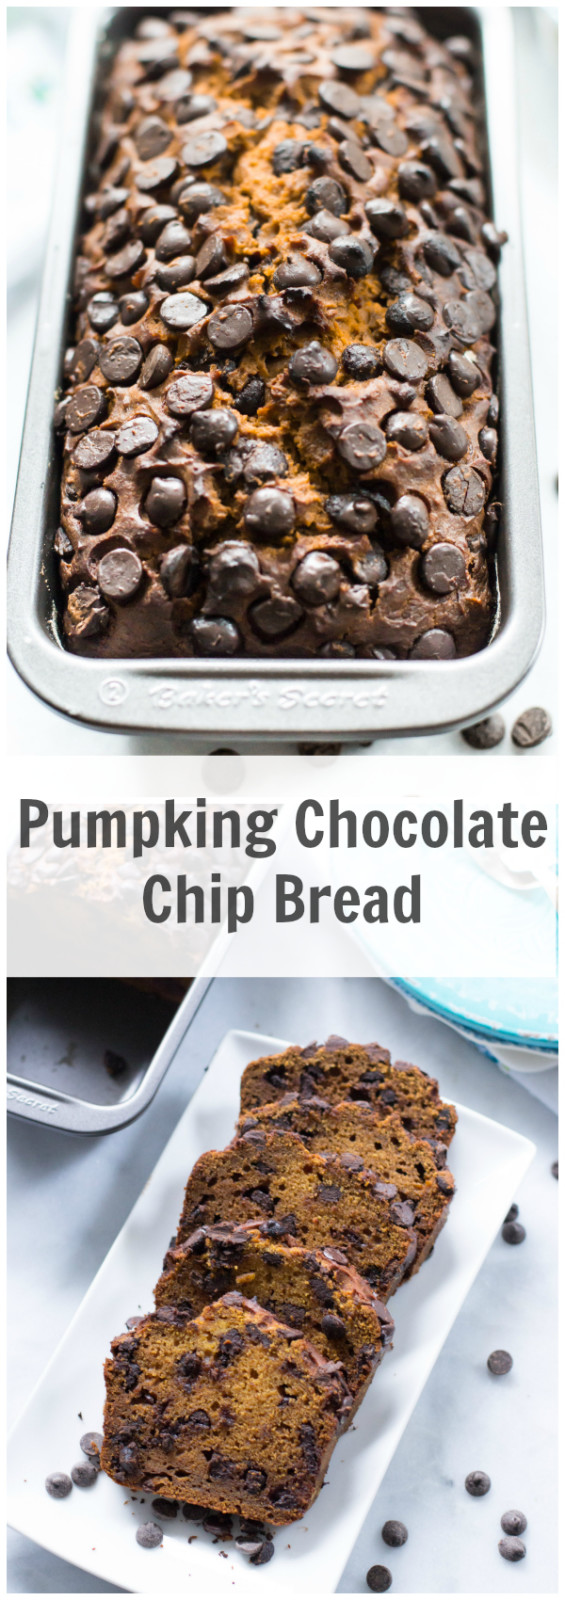 Pumpkin Chocolate Chip Bread - This is an incredibly moist Pumpkin Chocolate Chip Bread and it is loaded with fall flavour from the sweet cinnamon spice, cinnamon and chocolate chips. Enjoy this healthy pumpkin bread!